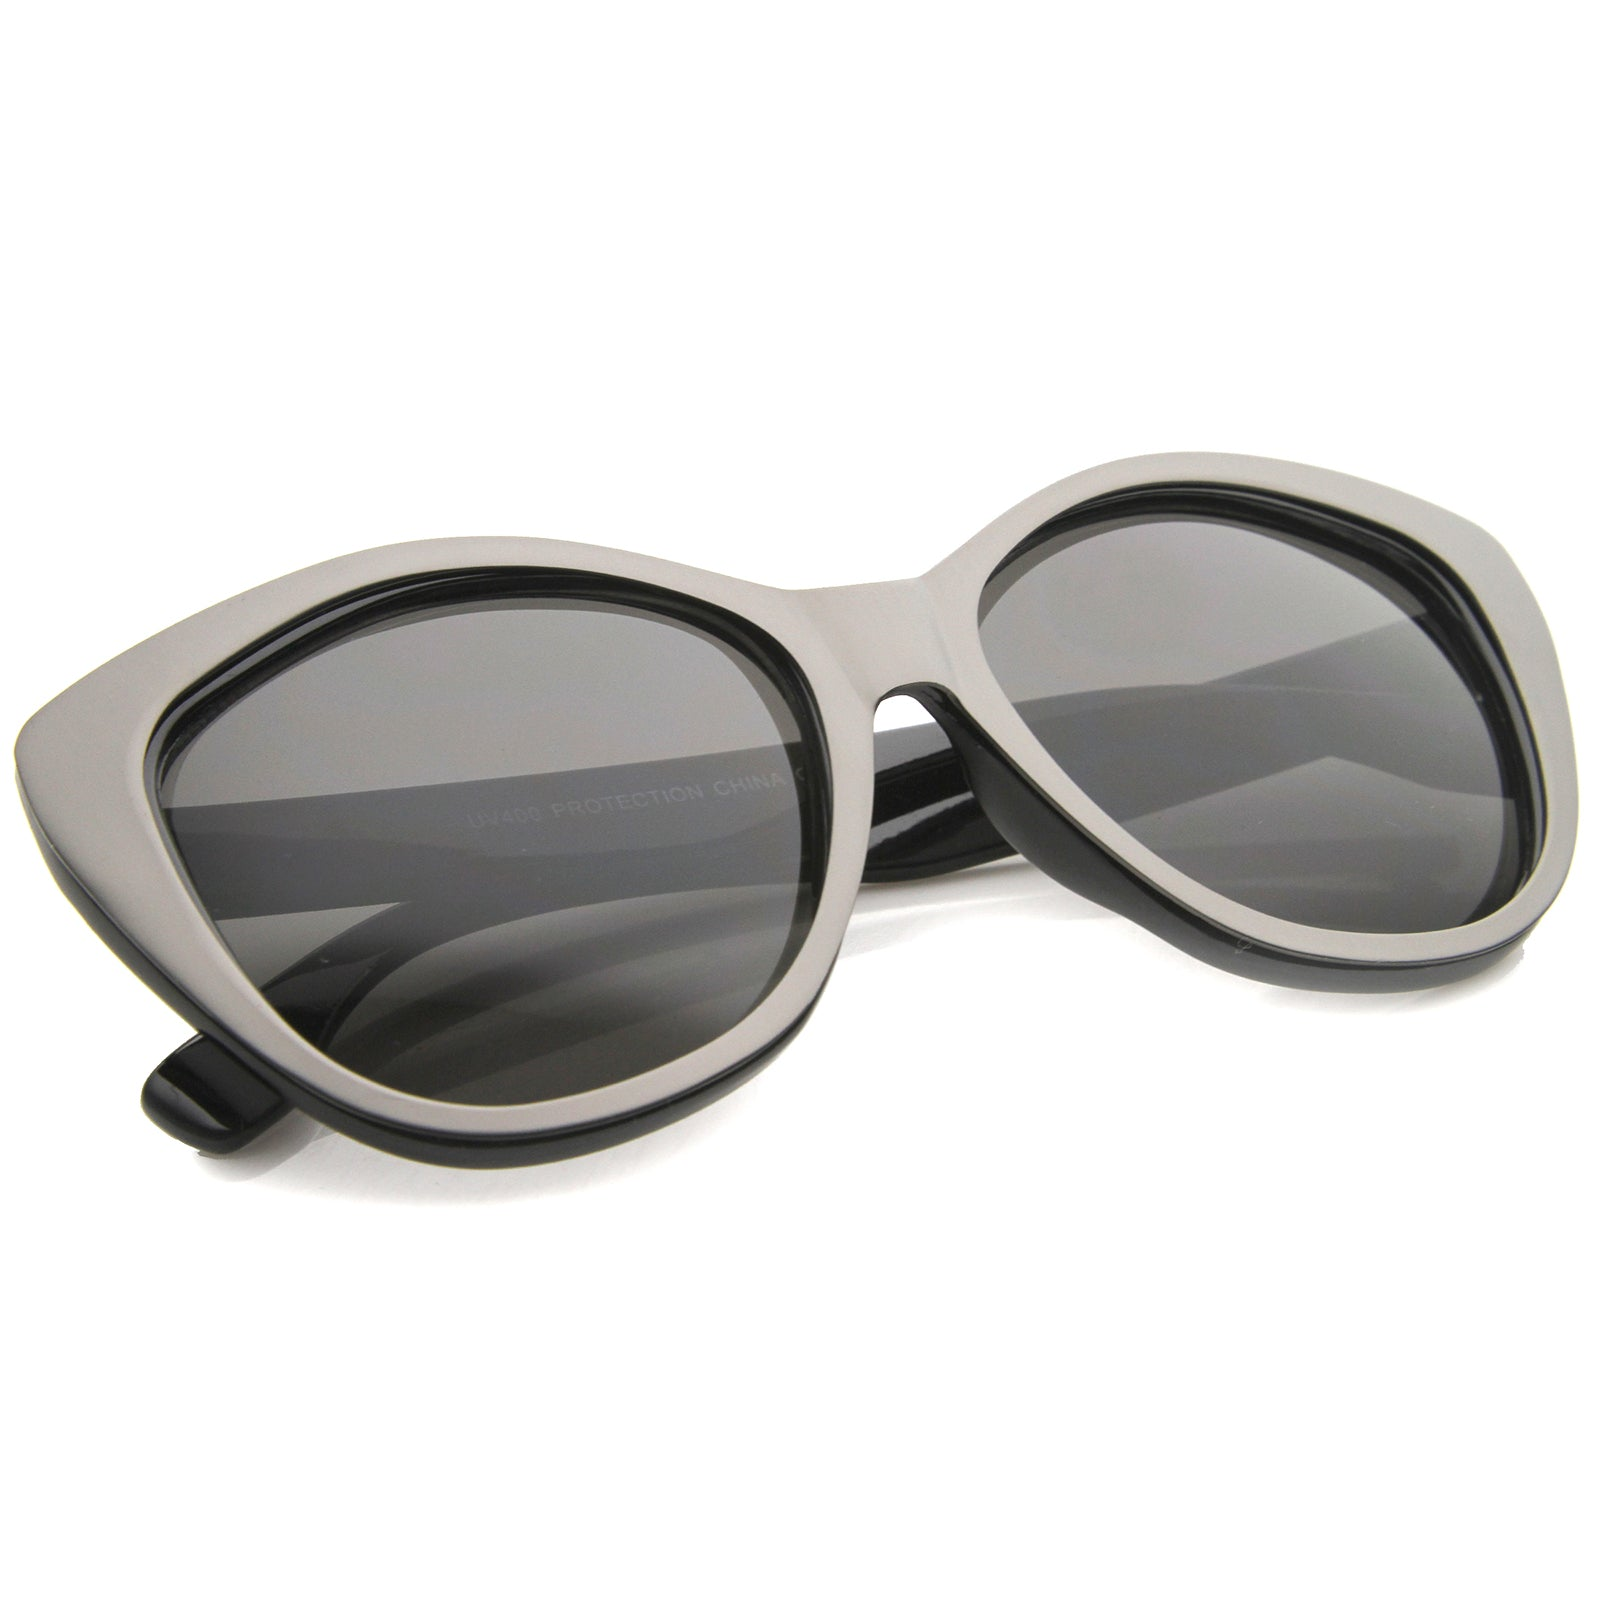 Women's High Fashion Two-Toned Tinted Lens Oversize Cat Eye Sunglasses 55mm - sunglass.la - 12